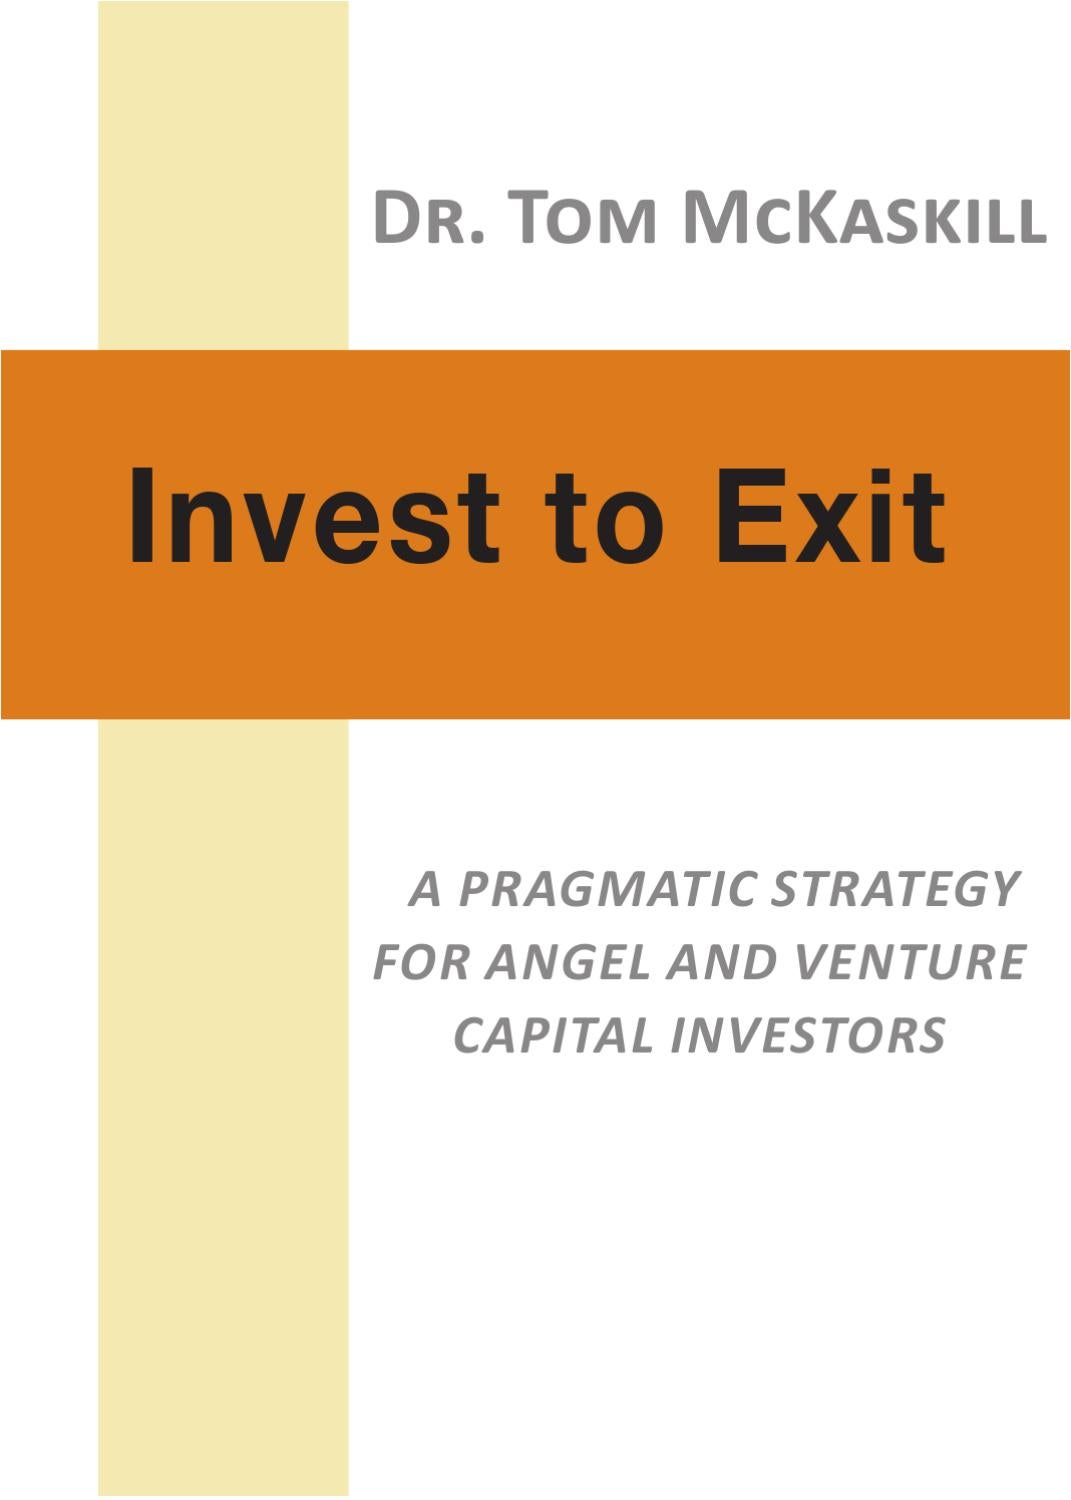 Invest To Exit A Pragmatic Strategy For Angel And Venture Capital All In Mall Circuit Continuity Tester New Pricefallscom Investors By Philip Bateman Issuu